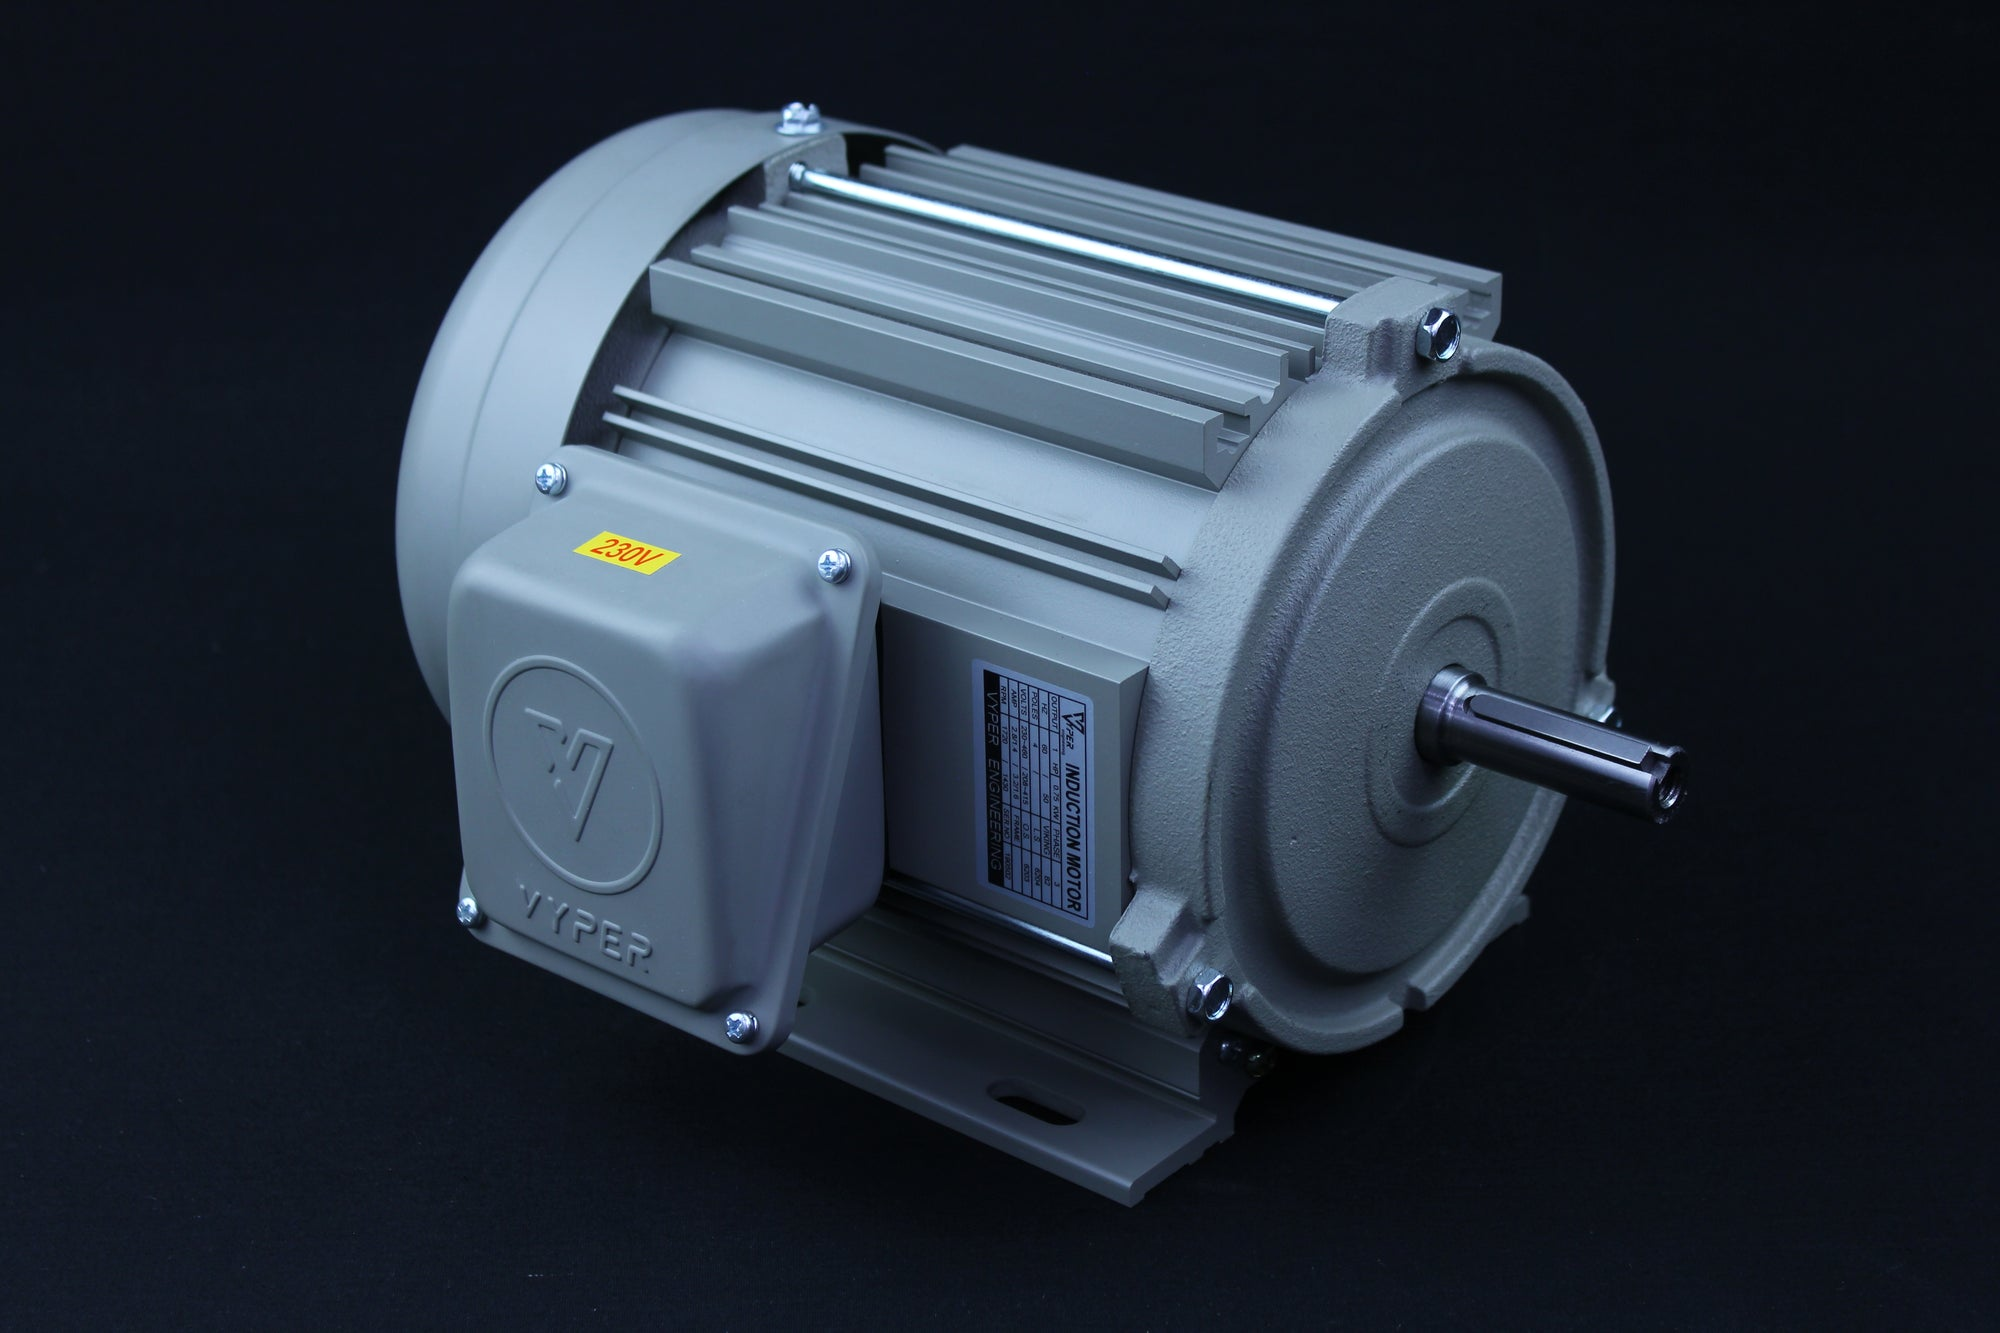 Three Phase Electrical Motor - 1HP - 208-230/460V - 1430/1720RPM - 50/60HZ - 56 Foot